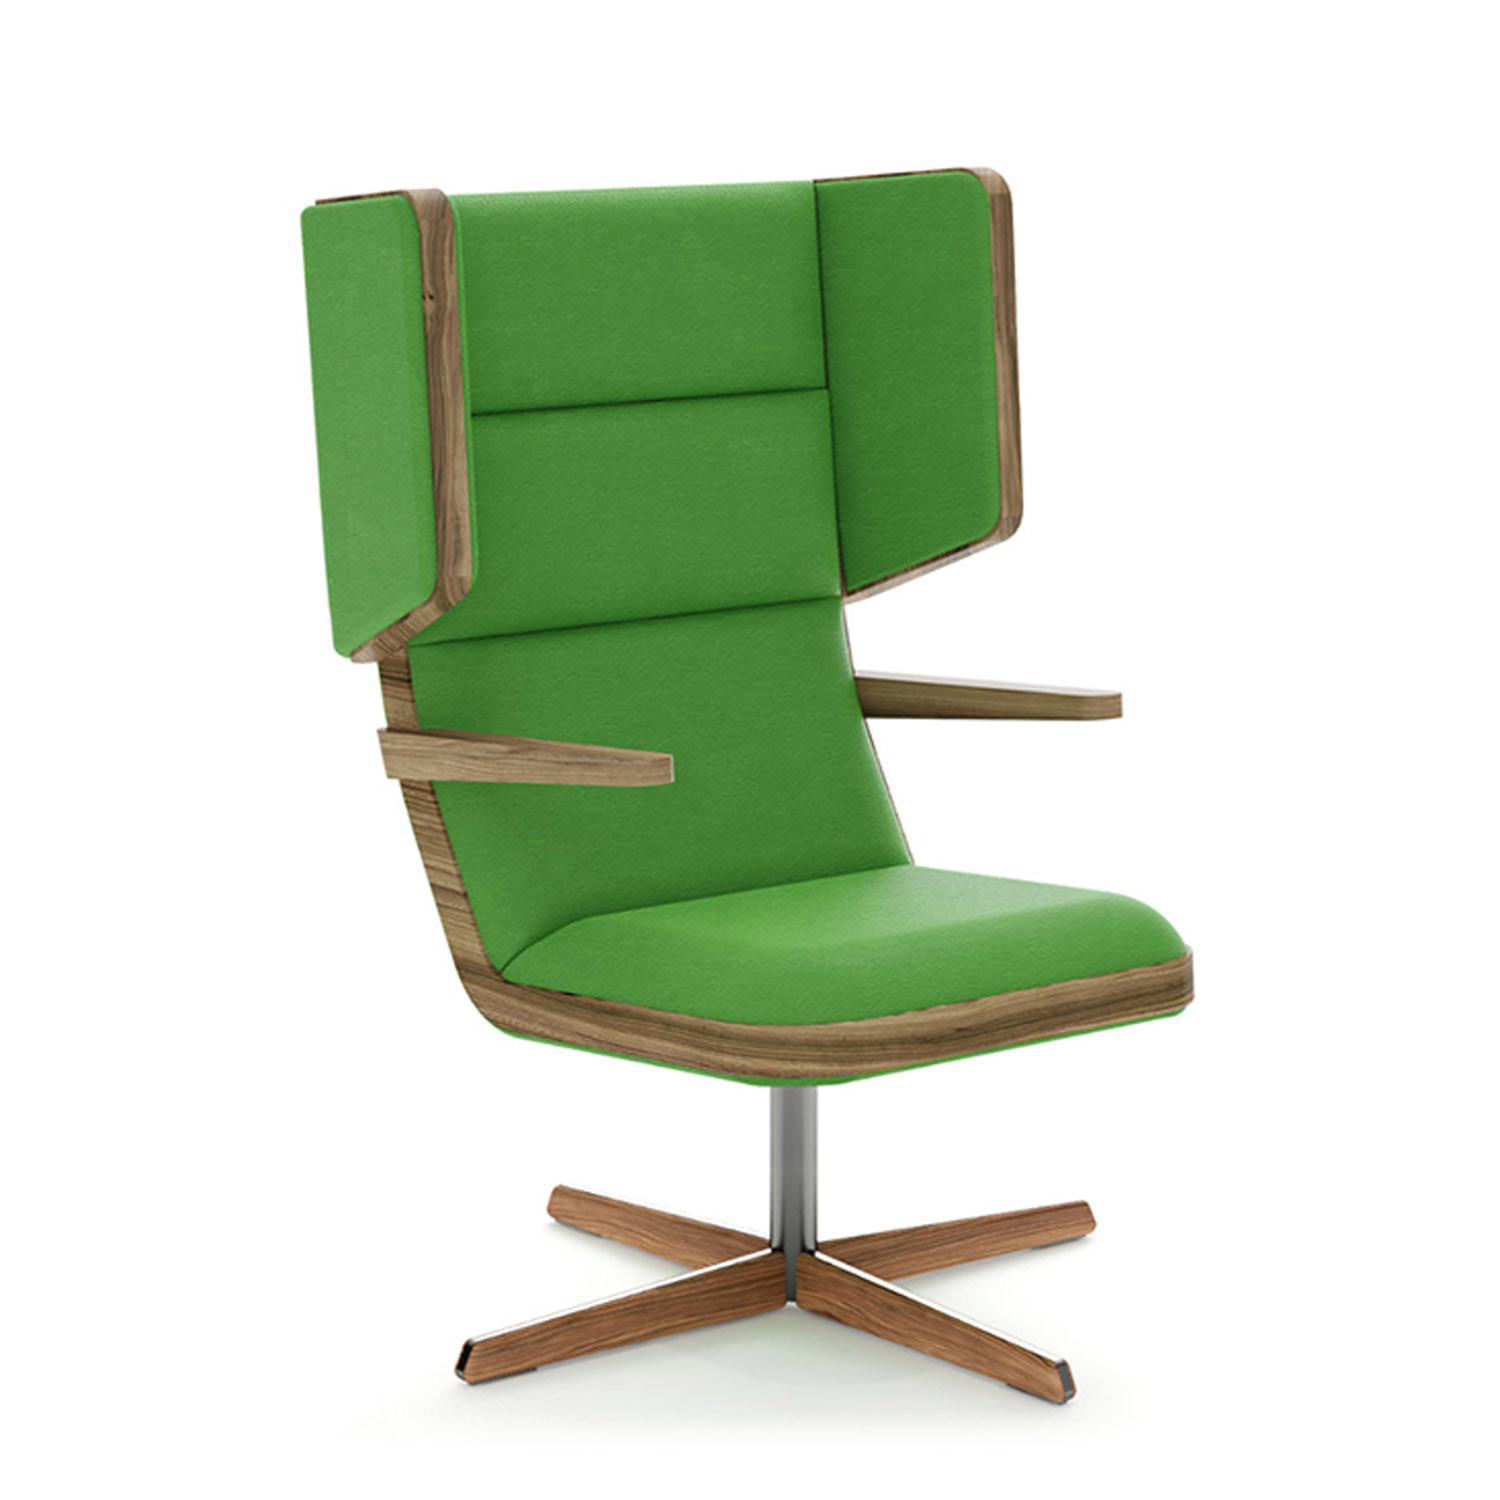 Jentle Modern Wooden Lounge Chair SJT1A/B